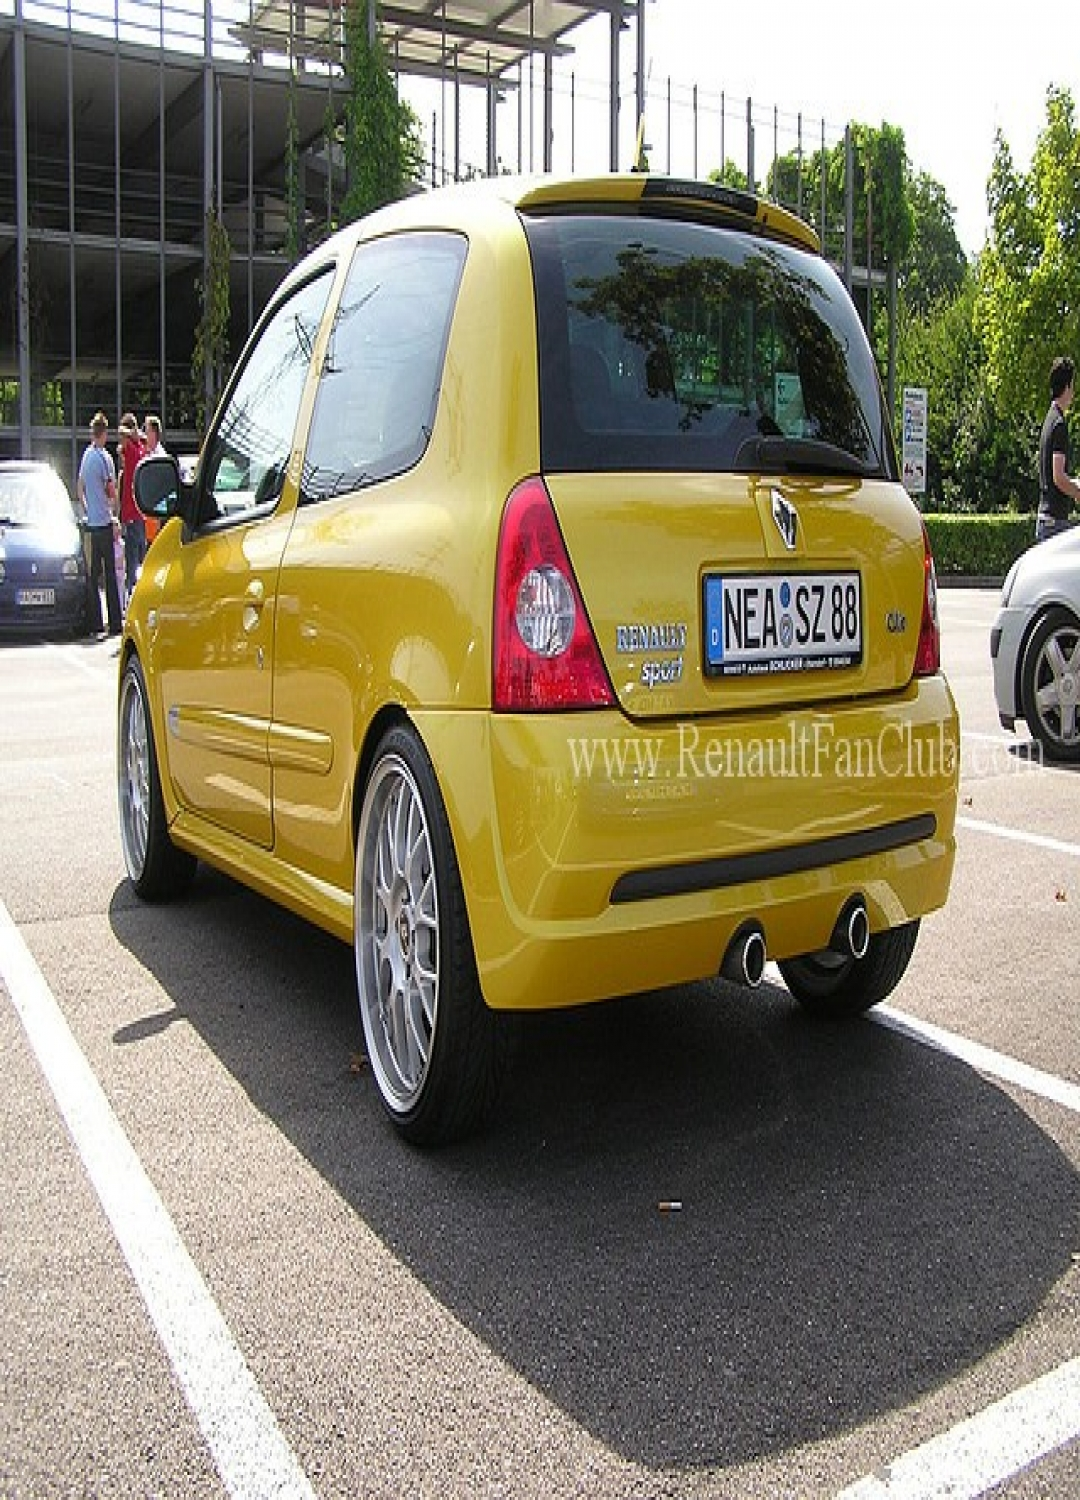 renault clio 2 spor yay 5 cm fk tuning shop oto. Black Bedroom Furniture Sets. Home Design Ideas